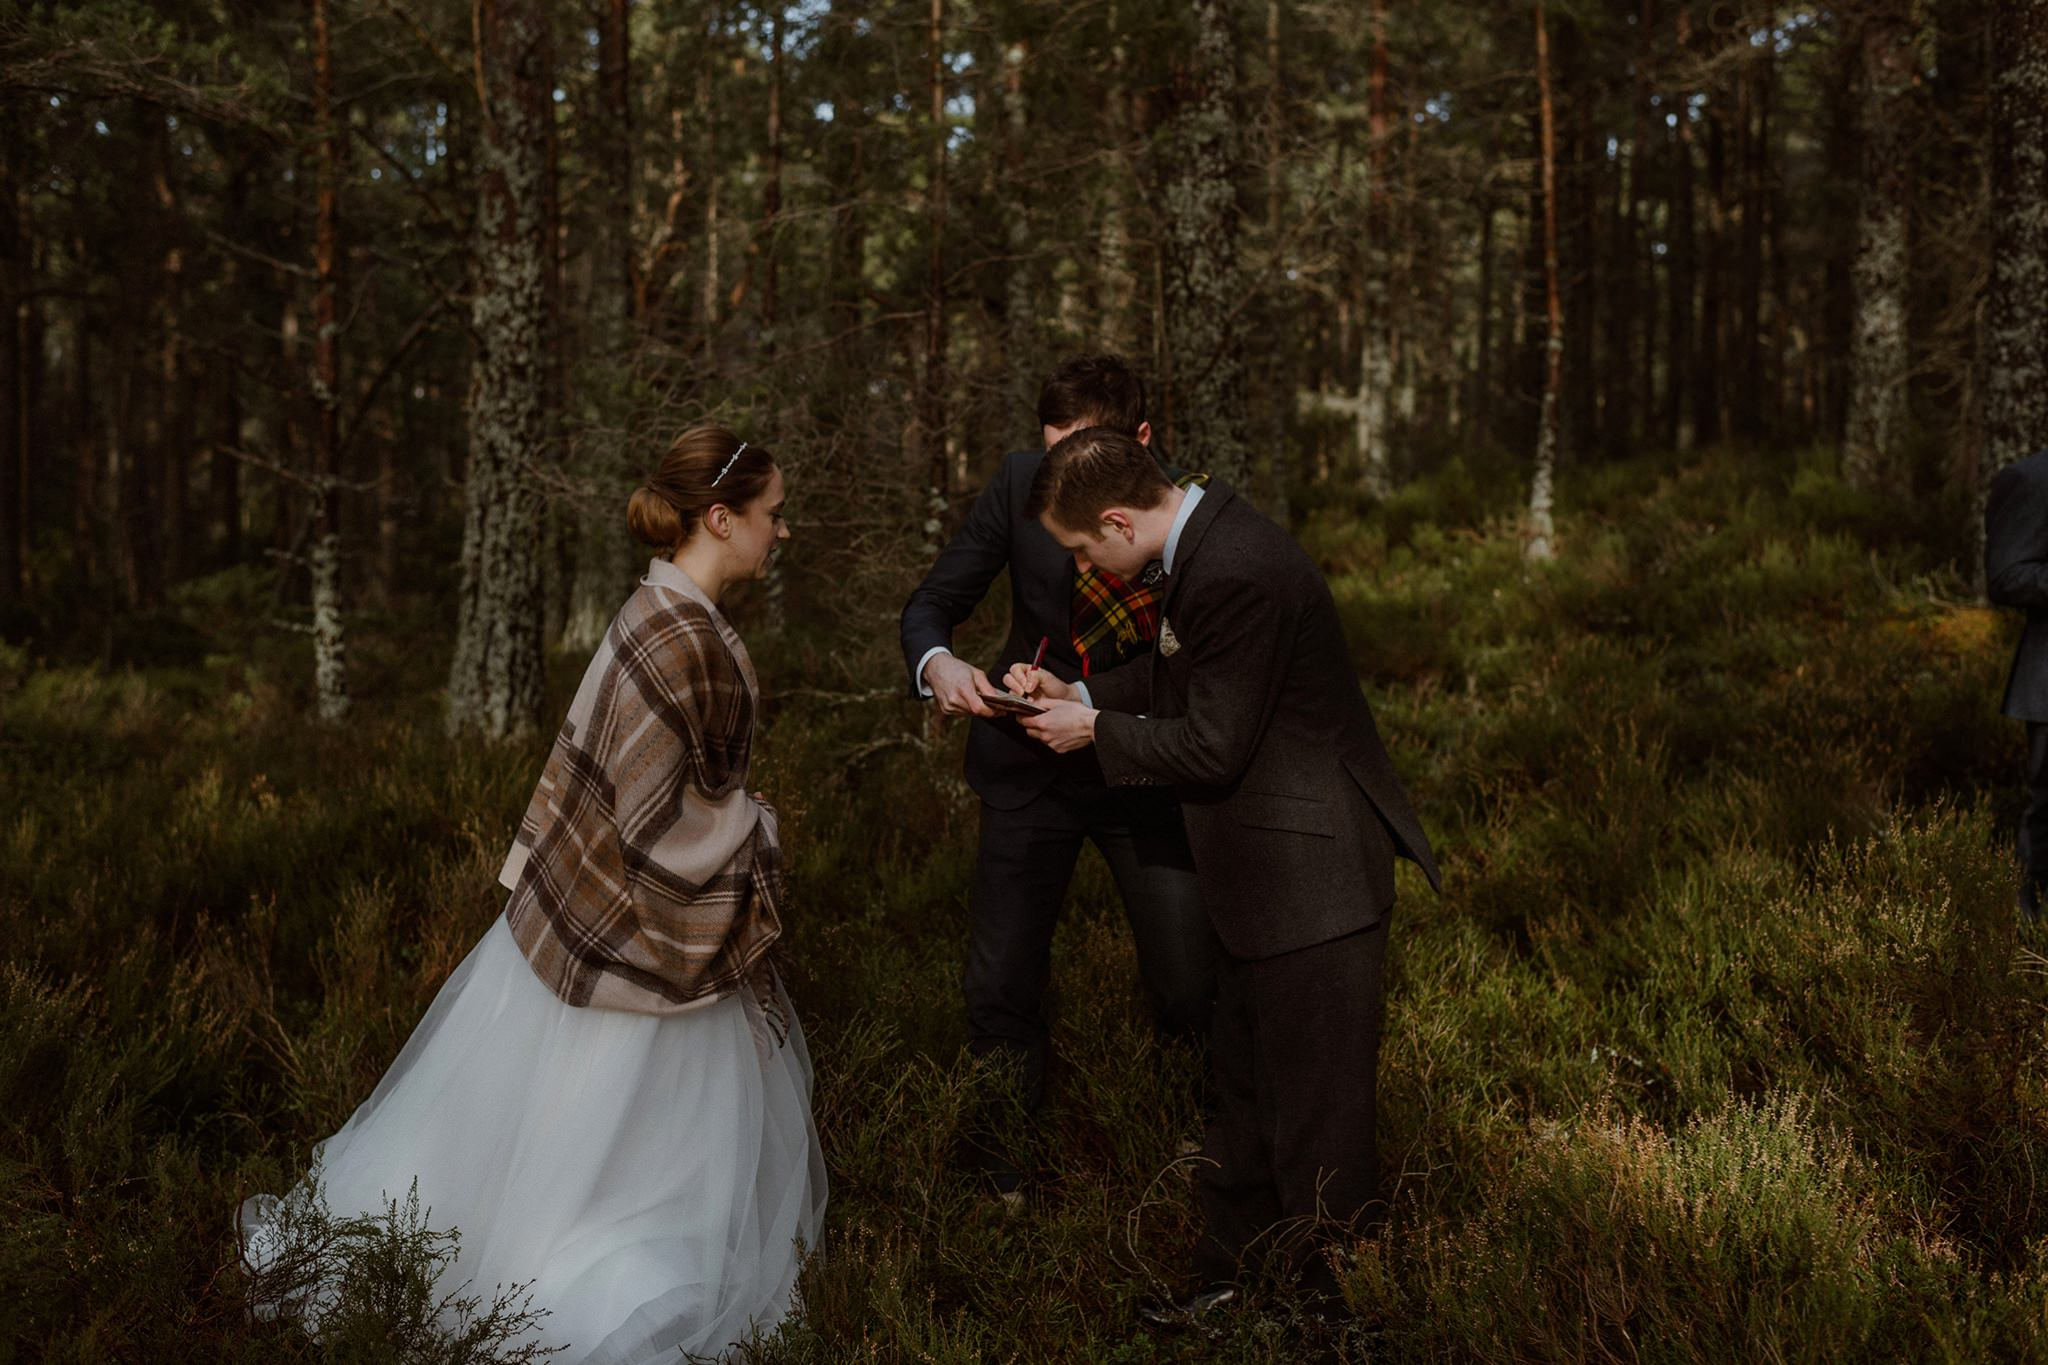 Elopement location Rothiemurchus forest Cairngorms Scotland